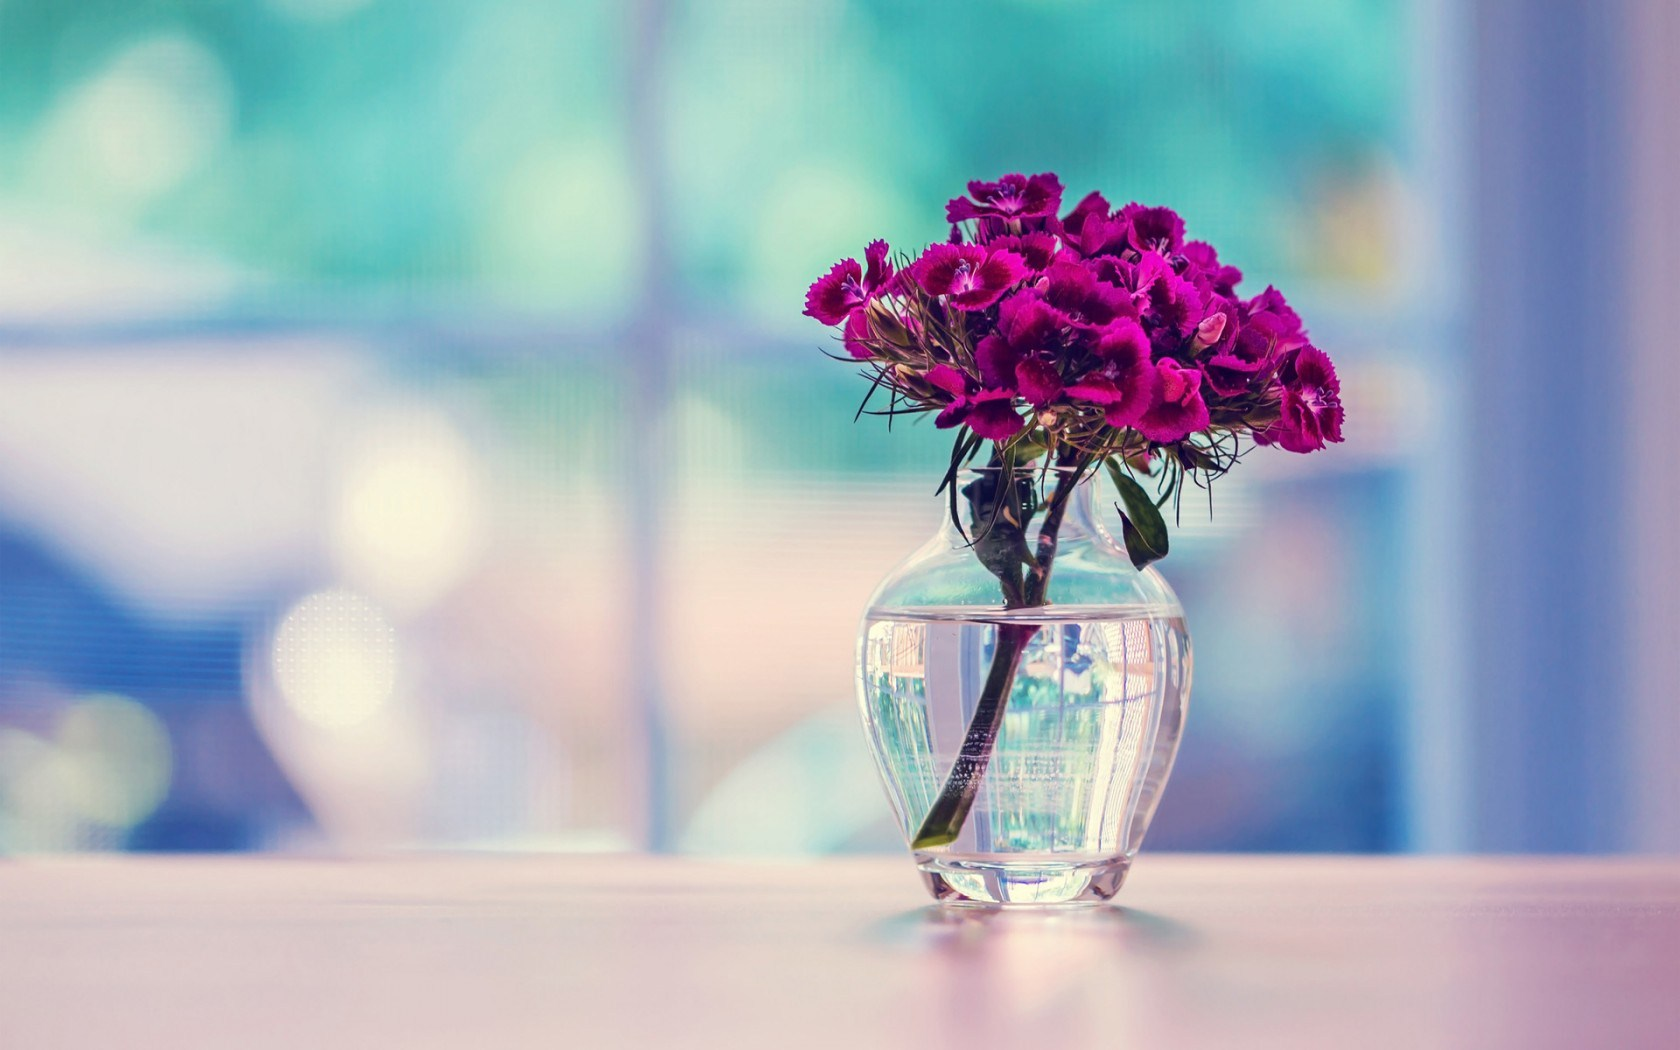 Gorgeous Vase Wallpaper 39299 1920x1200 px